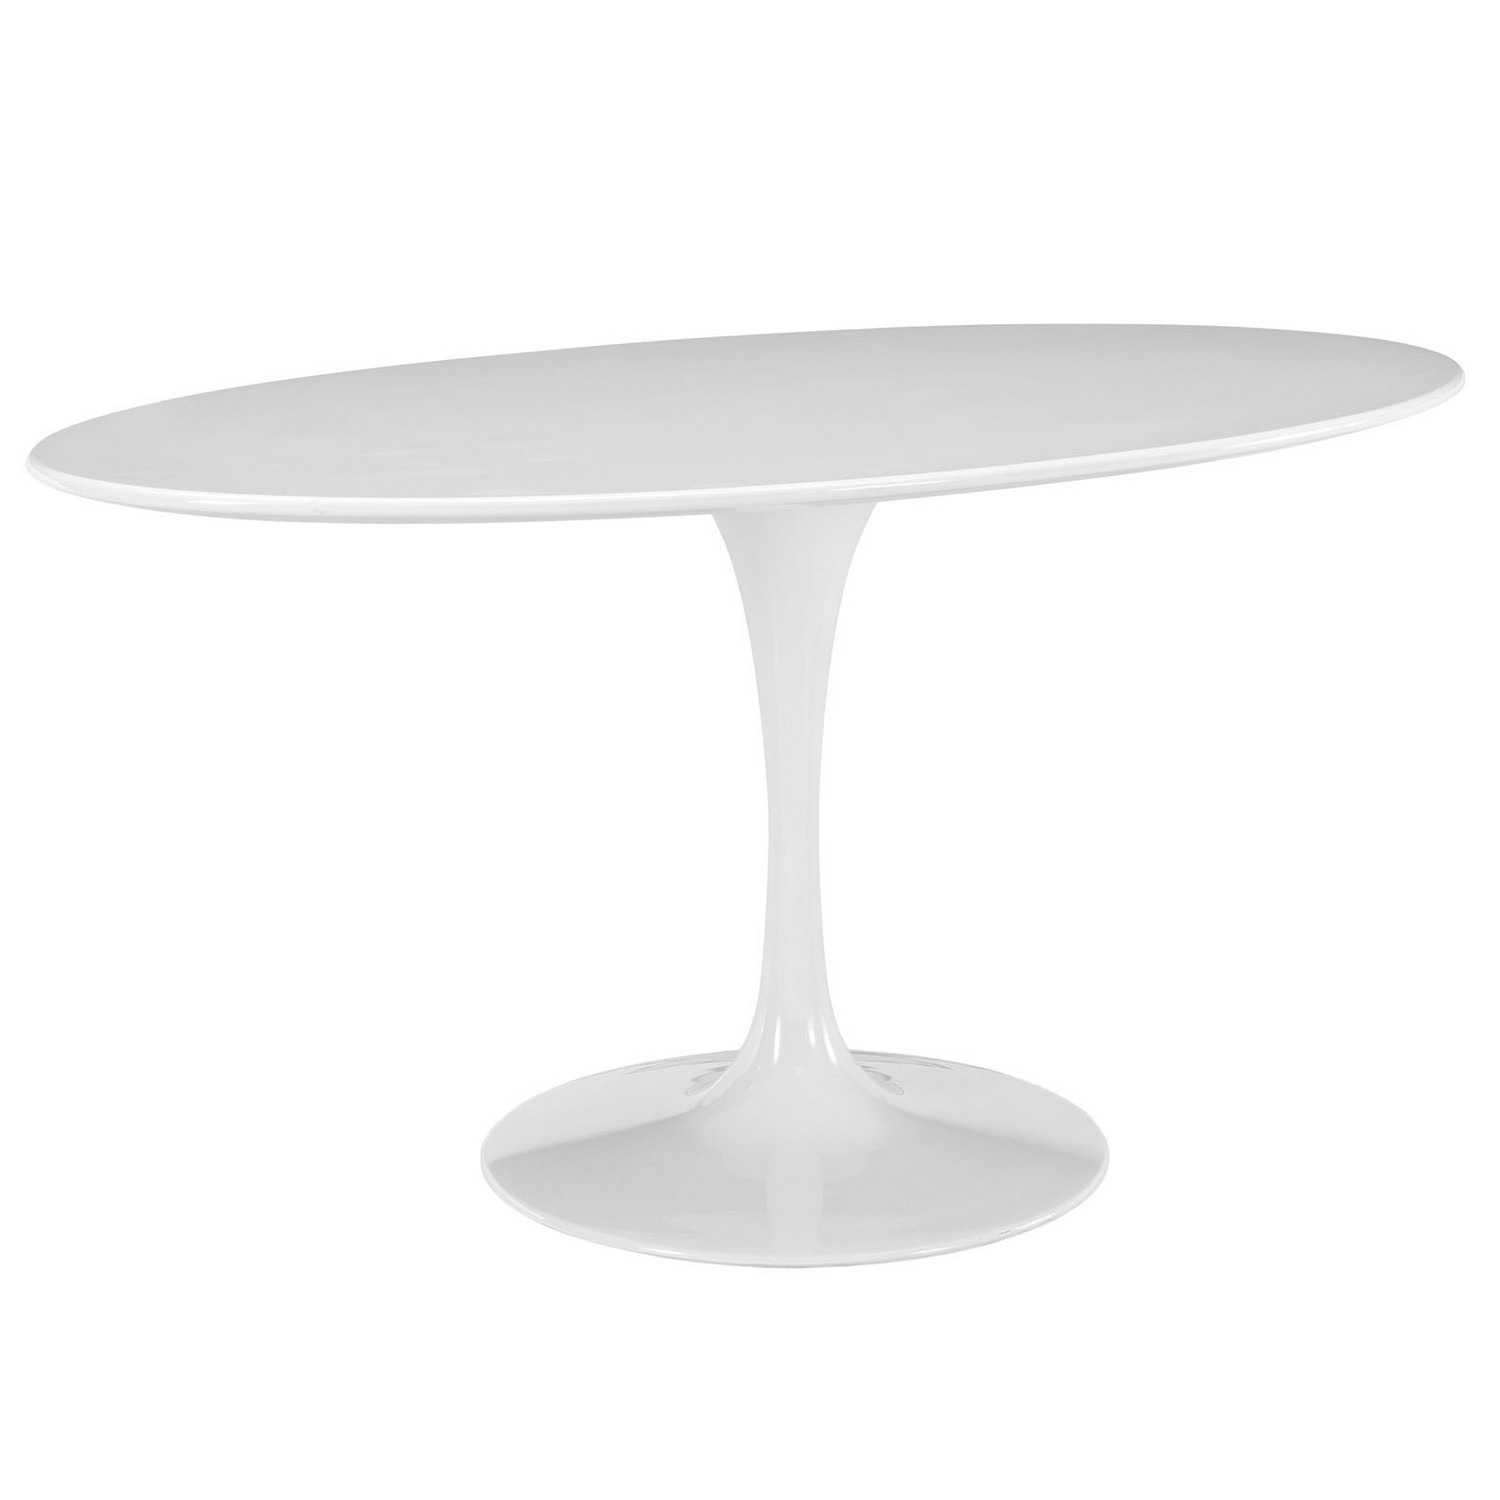 Modway Lippa 60 Oval-Shaped Wood Top Dining Table - White